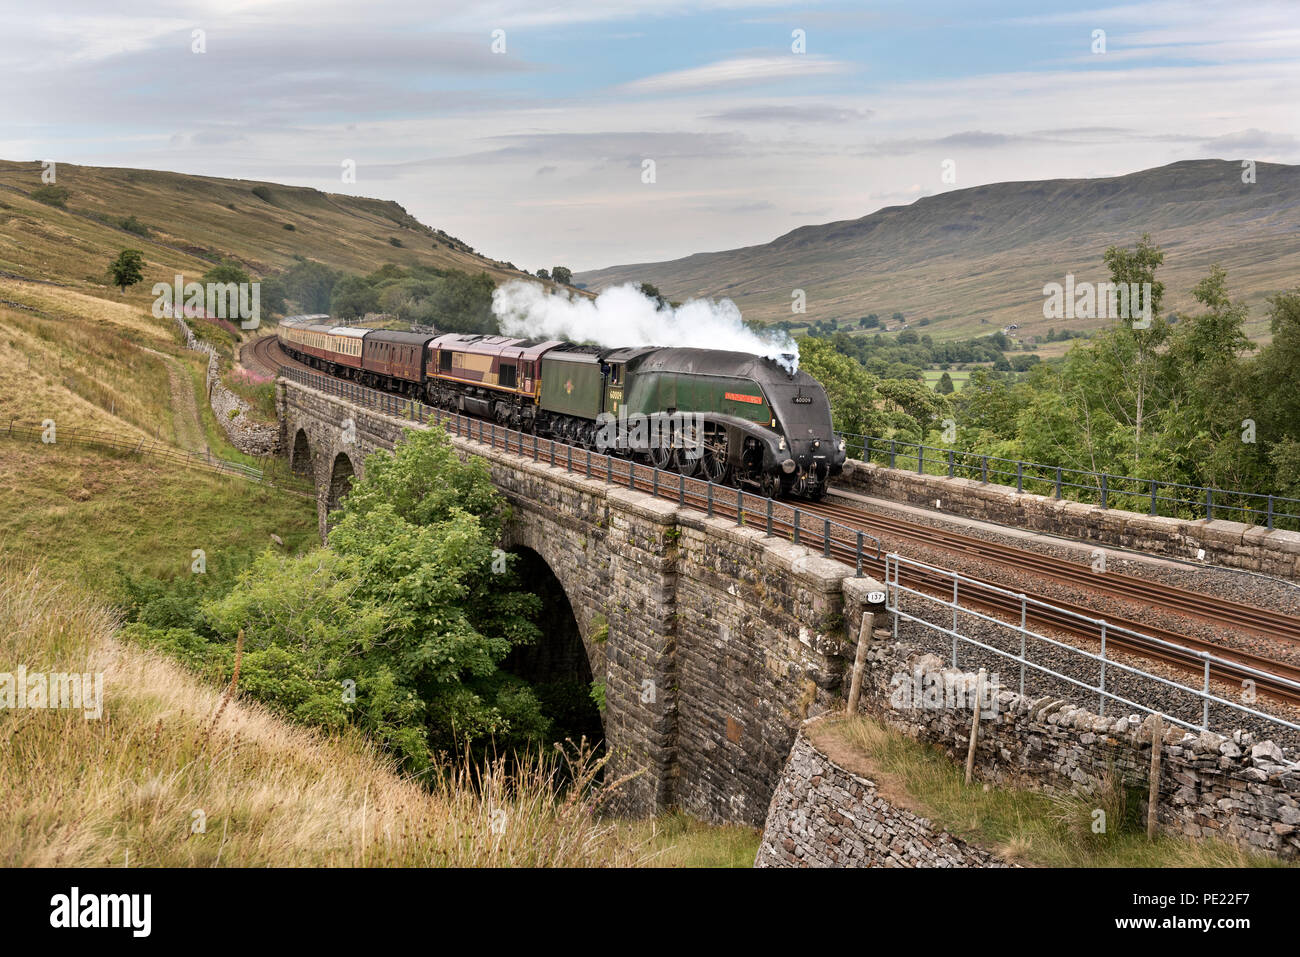 Cumbria, UK, 11 Aug 2018. Steam loco 'Union of South Africa' hauls the Settle and Carlisle Golden Express, Ais Gill Viaduct near the summit of the Settle to Carlisle railway line. Due to fire risk as a result of the dry weather the steam locomotive has to be assisted by a diesel, seen here behind the steam loco. Union of South Africa is an A4 locomotive of the same class as the Mallard, which holds the world steam speed record. 11th August marks the 50th anniversary of the last steam passenger train on British Railways in 1968 and this is celebrated today. Credit: John Bentley /Alamy Live News - Stock Image